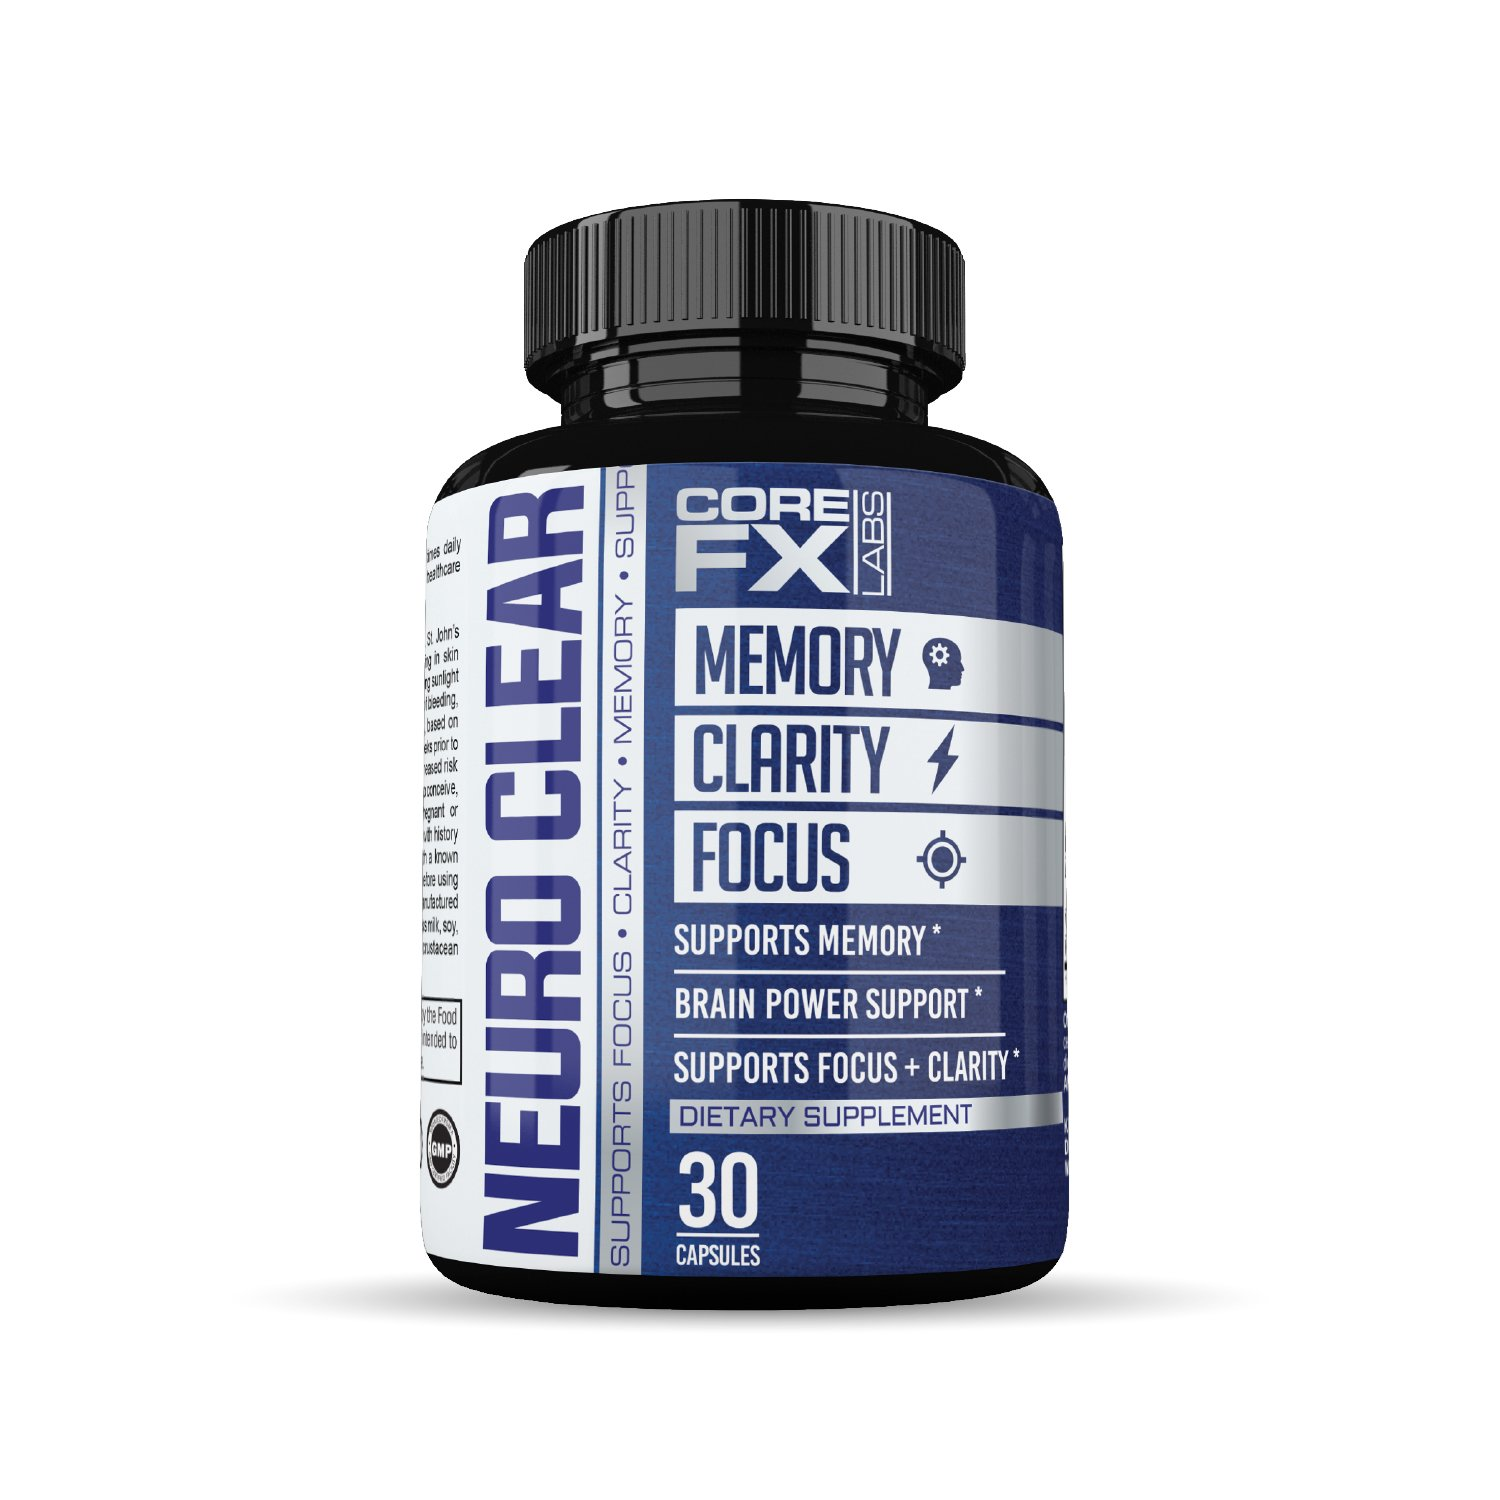 Brain Function Supplement by CoreFX Labs - Brain booster for Memory, Clarity and Focus - Mental Focus Nootropic - Brain Supplement with Ginko Biloba, St Johns Wort, Bacopa Monnieri & More